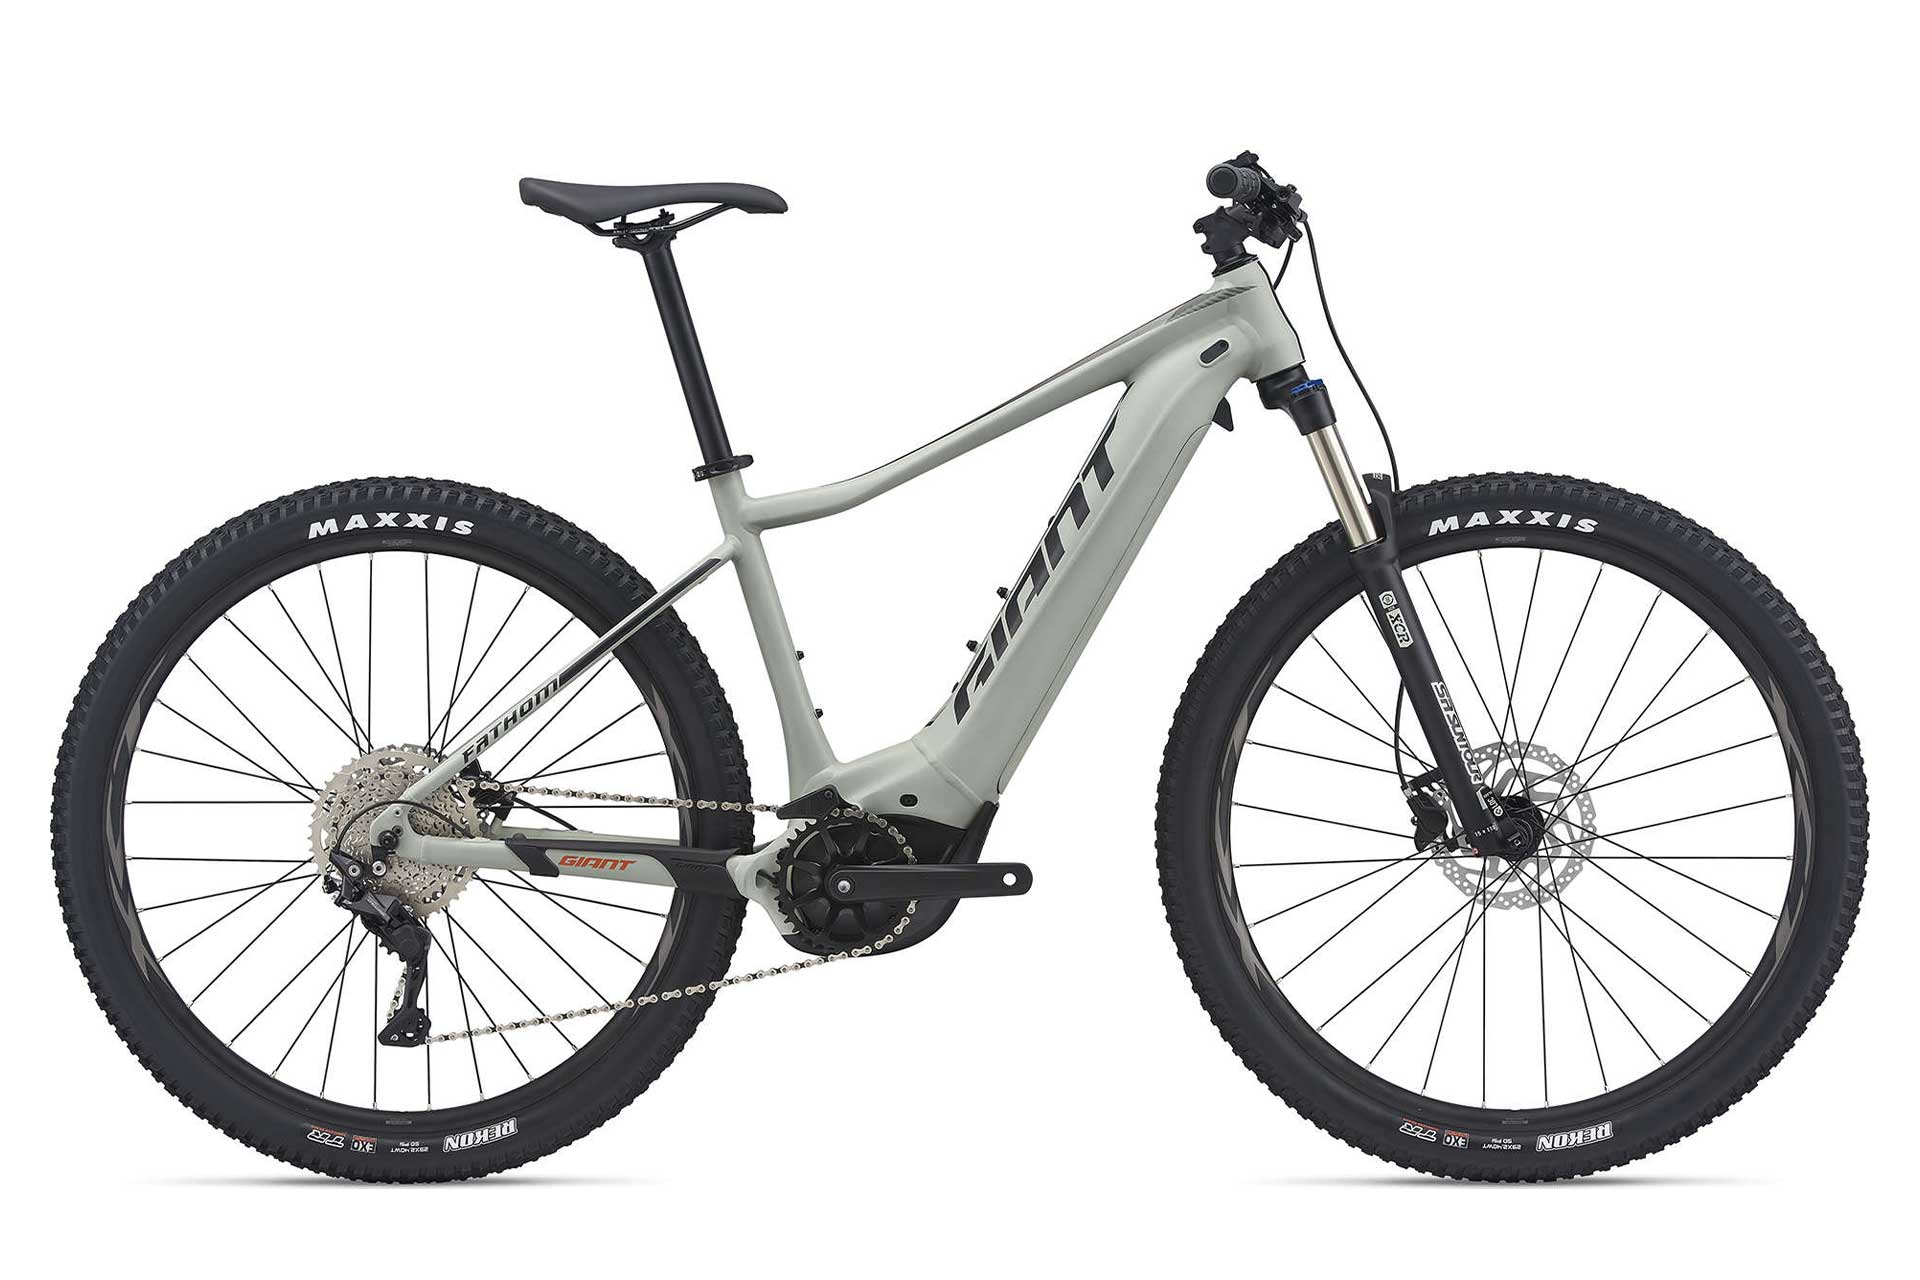 Sardinia Bike Green Giant Fathom E+2 29